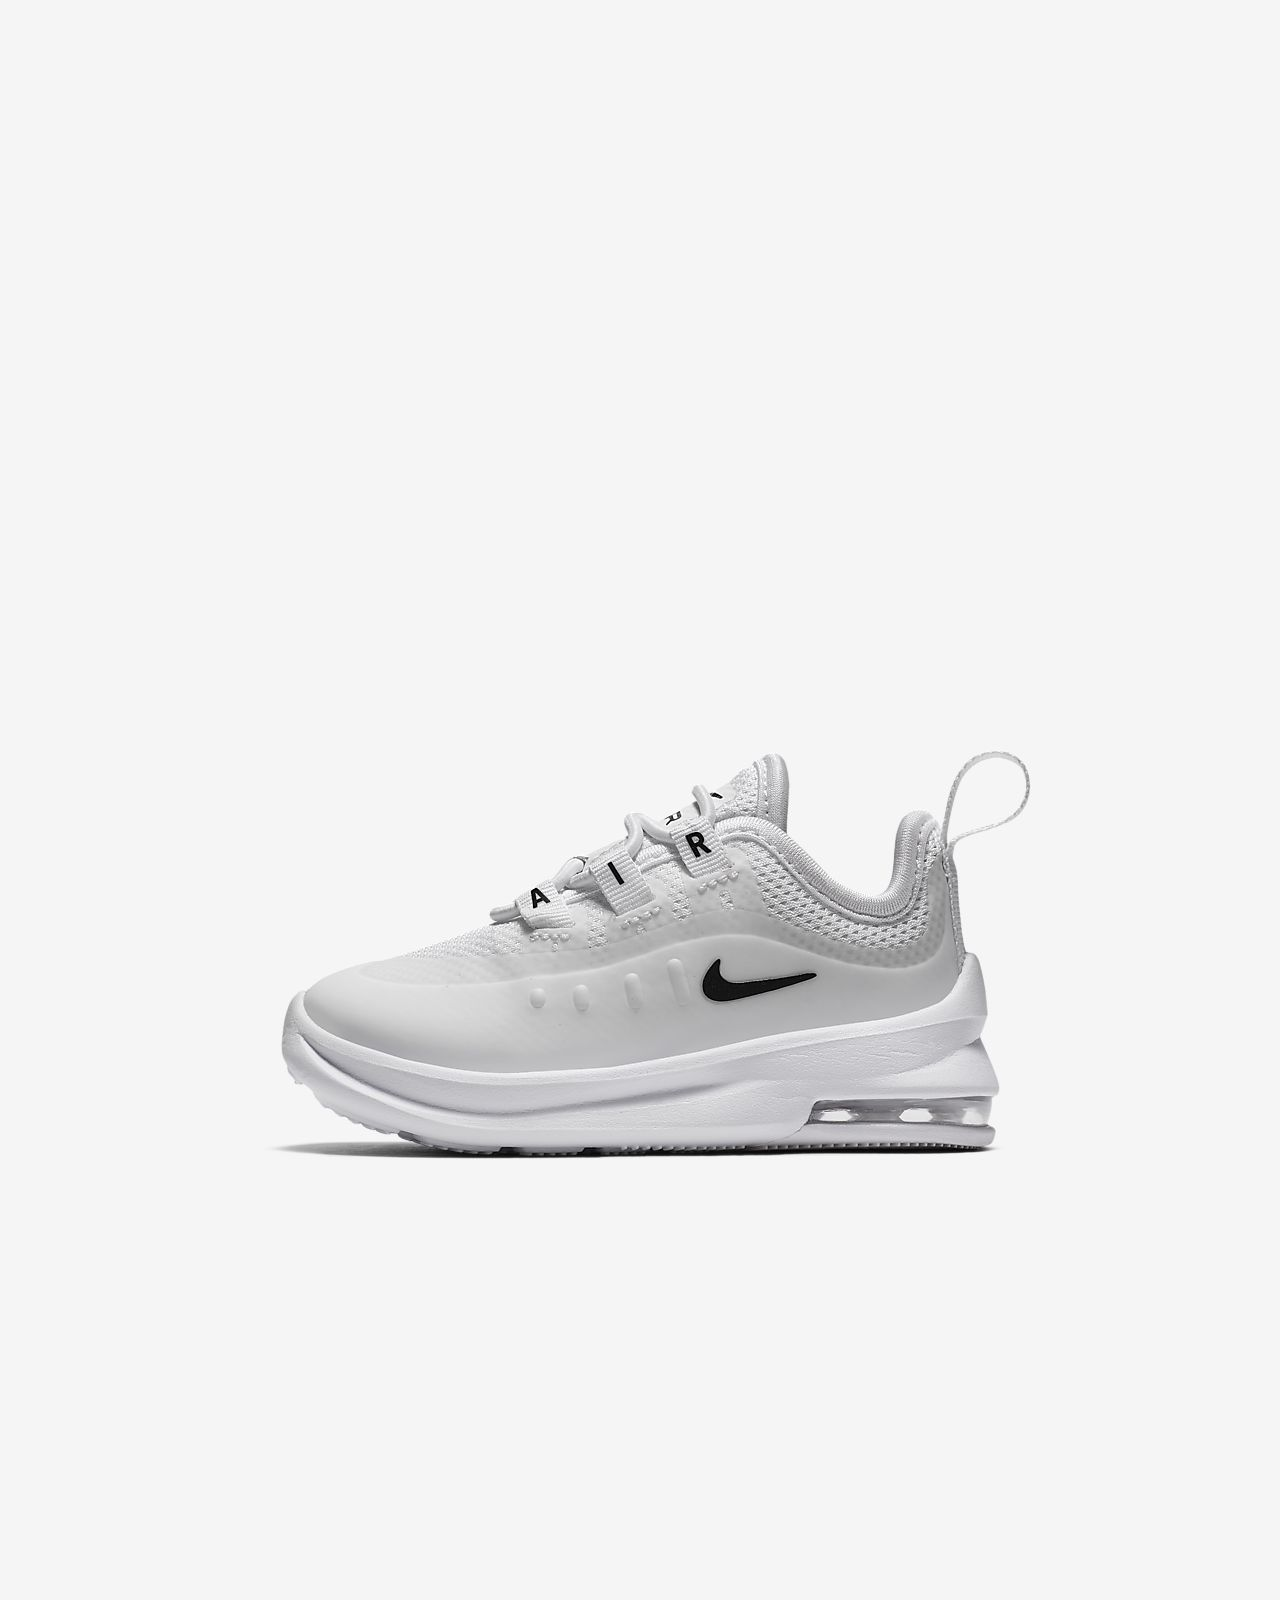 chaussure bebe nike taille 17,Code promo Nike : Chaussures